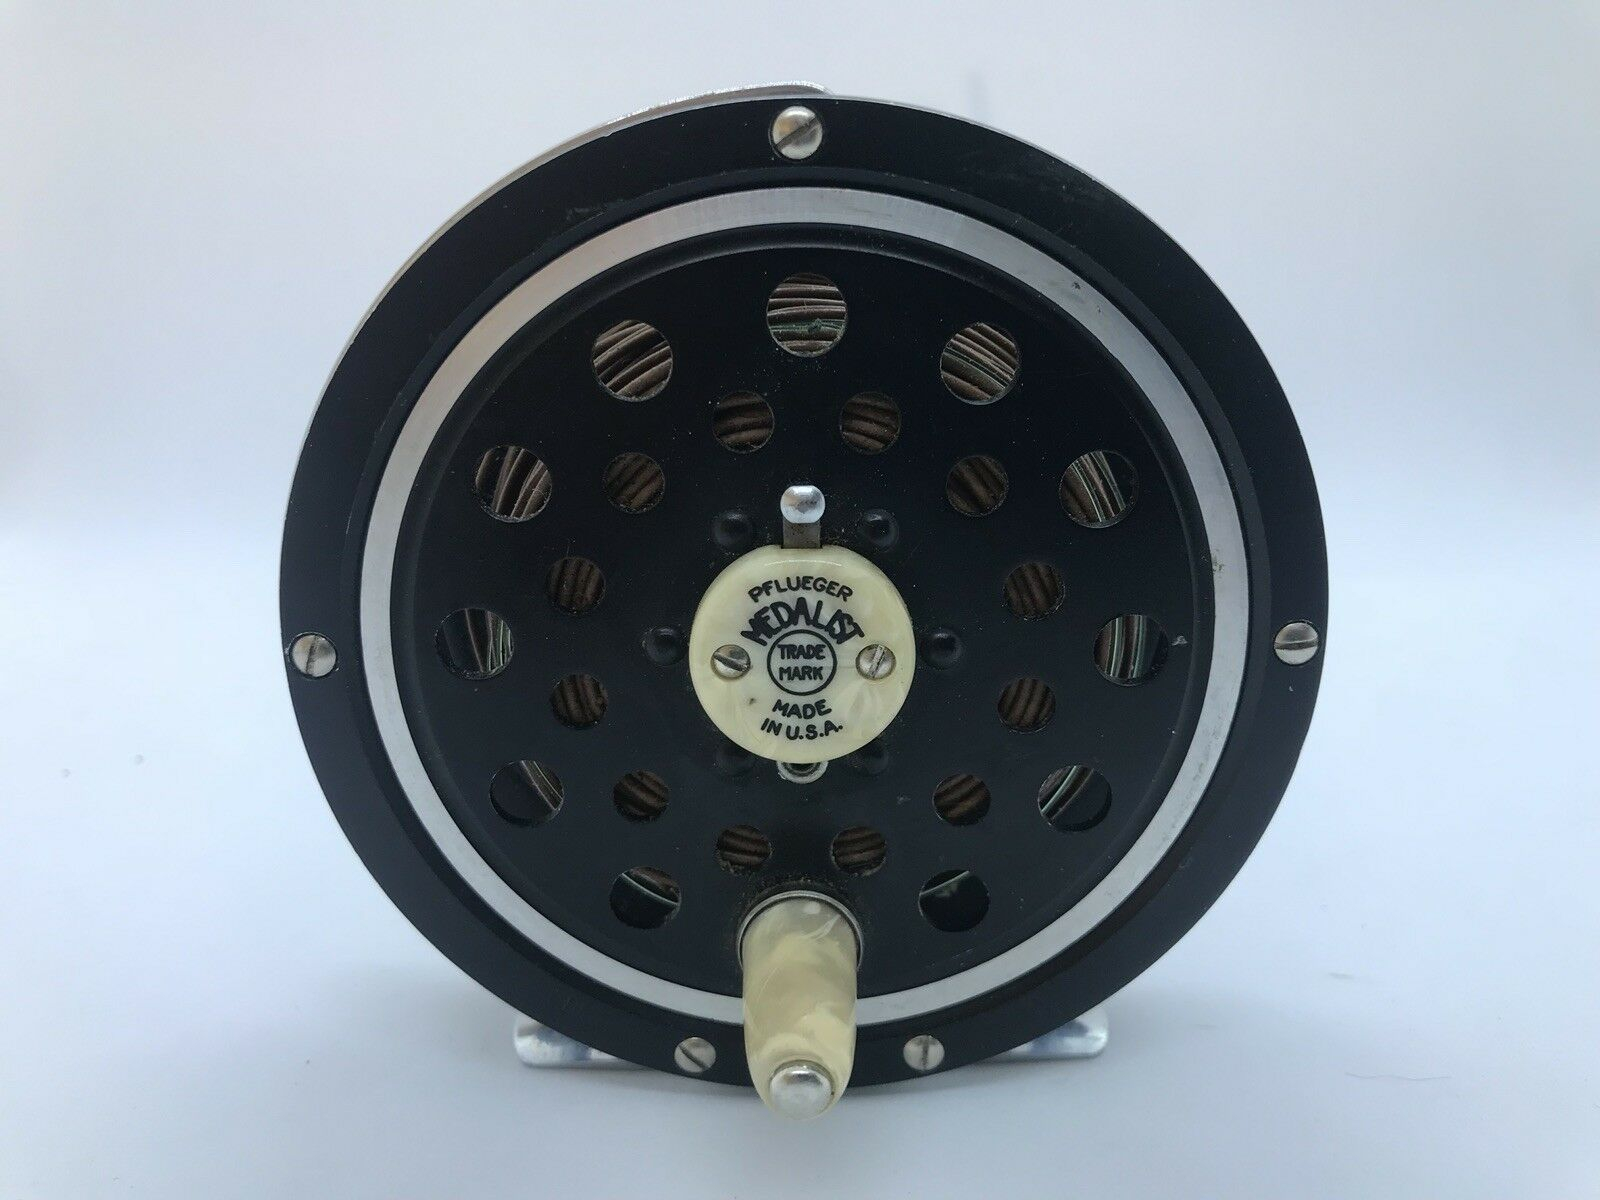 Pflueger Diamolite MEDALIST 1495 USA Made Fly Reel Diamolite Pflueger Guard e22aef